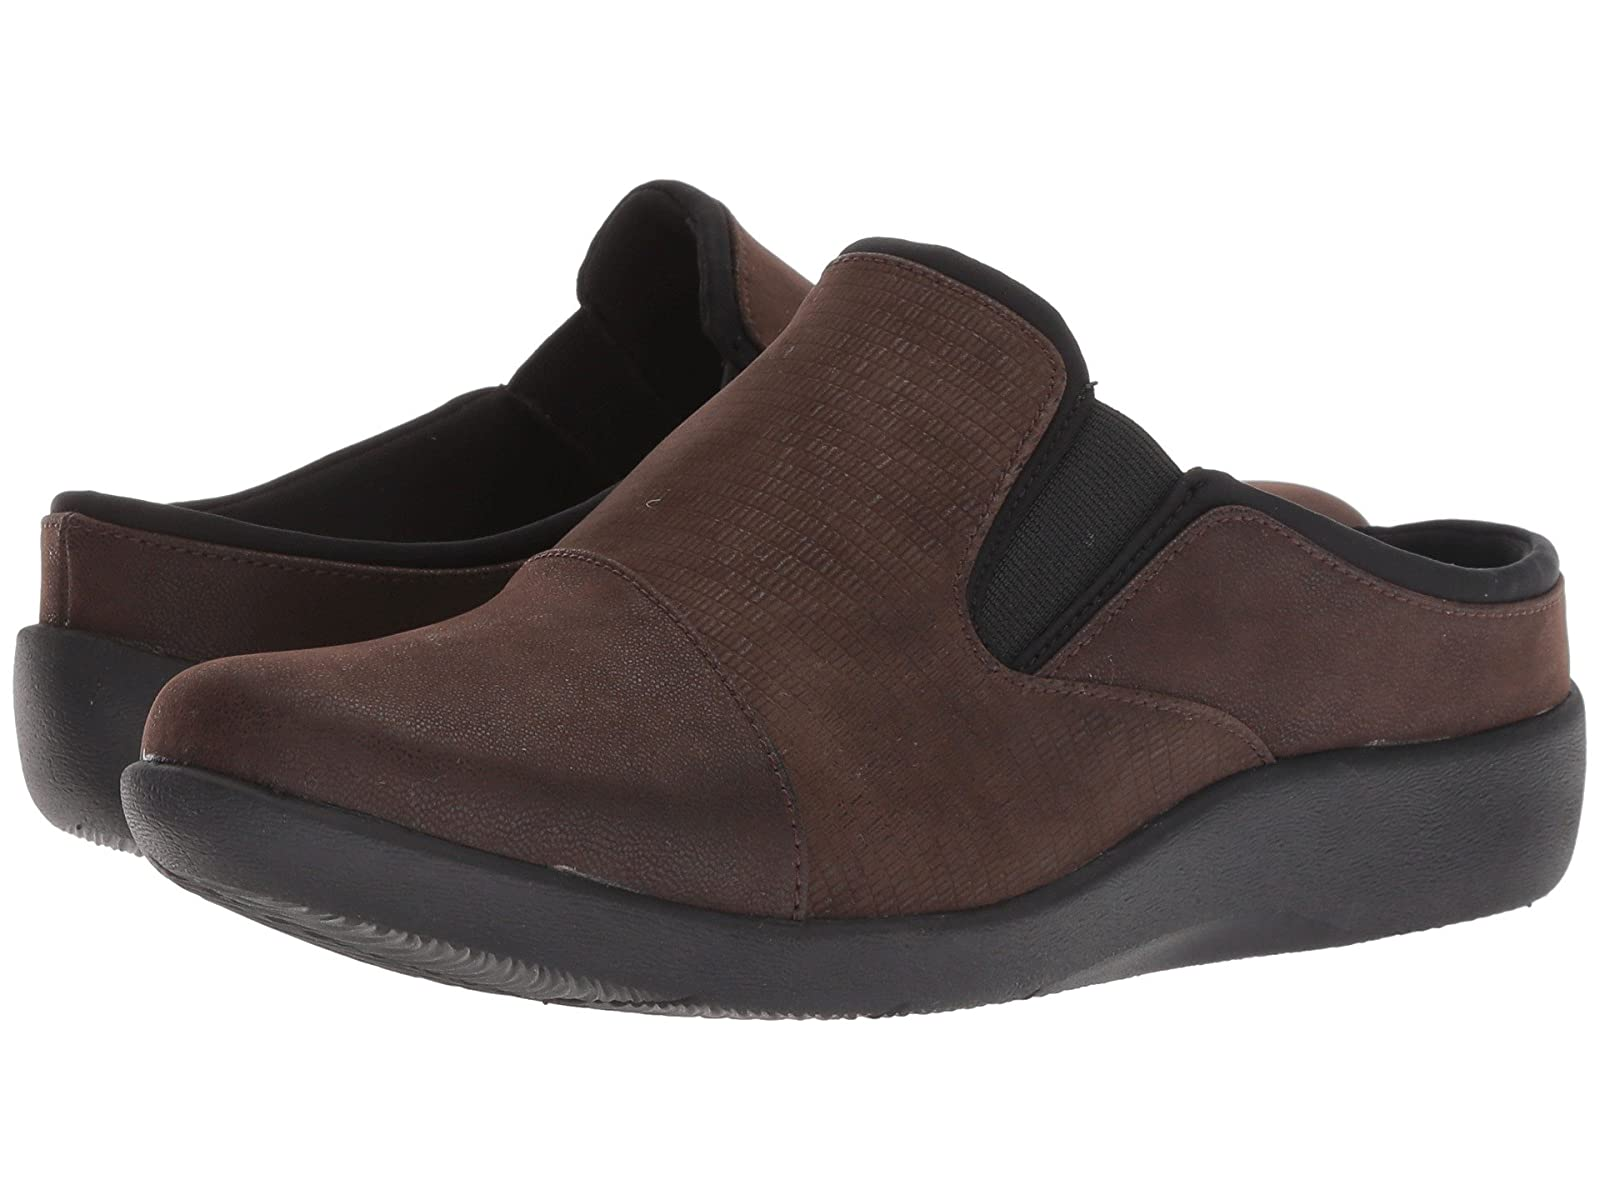 Clarks Sillian FreeEconomical and quality shoes